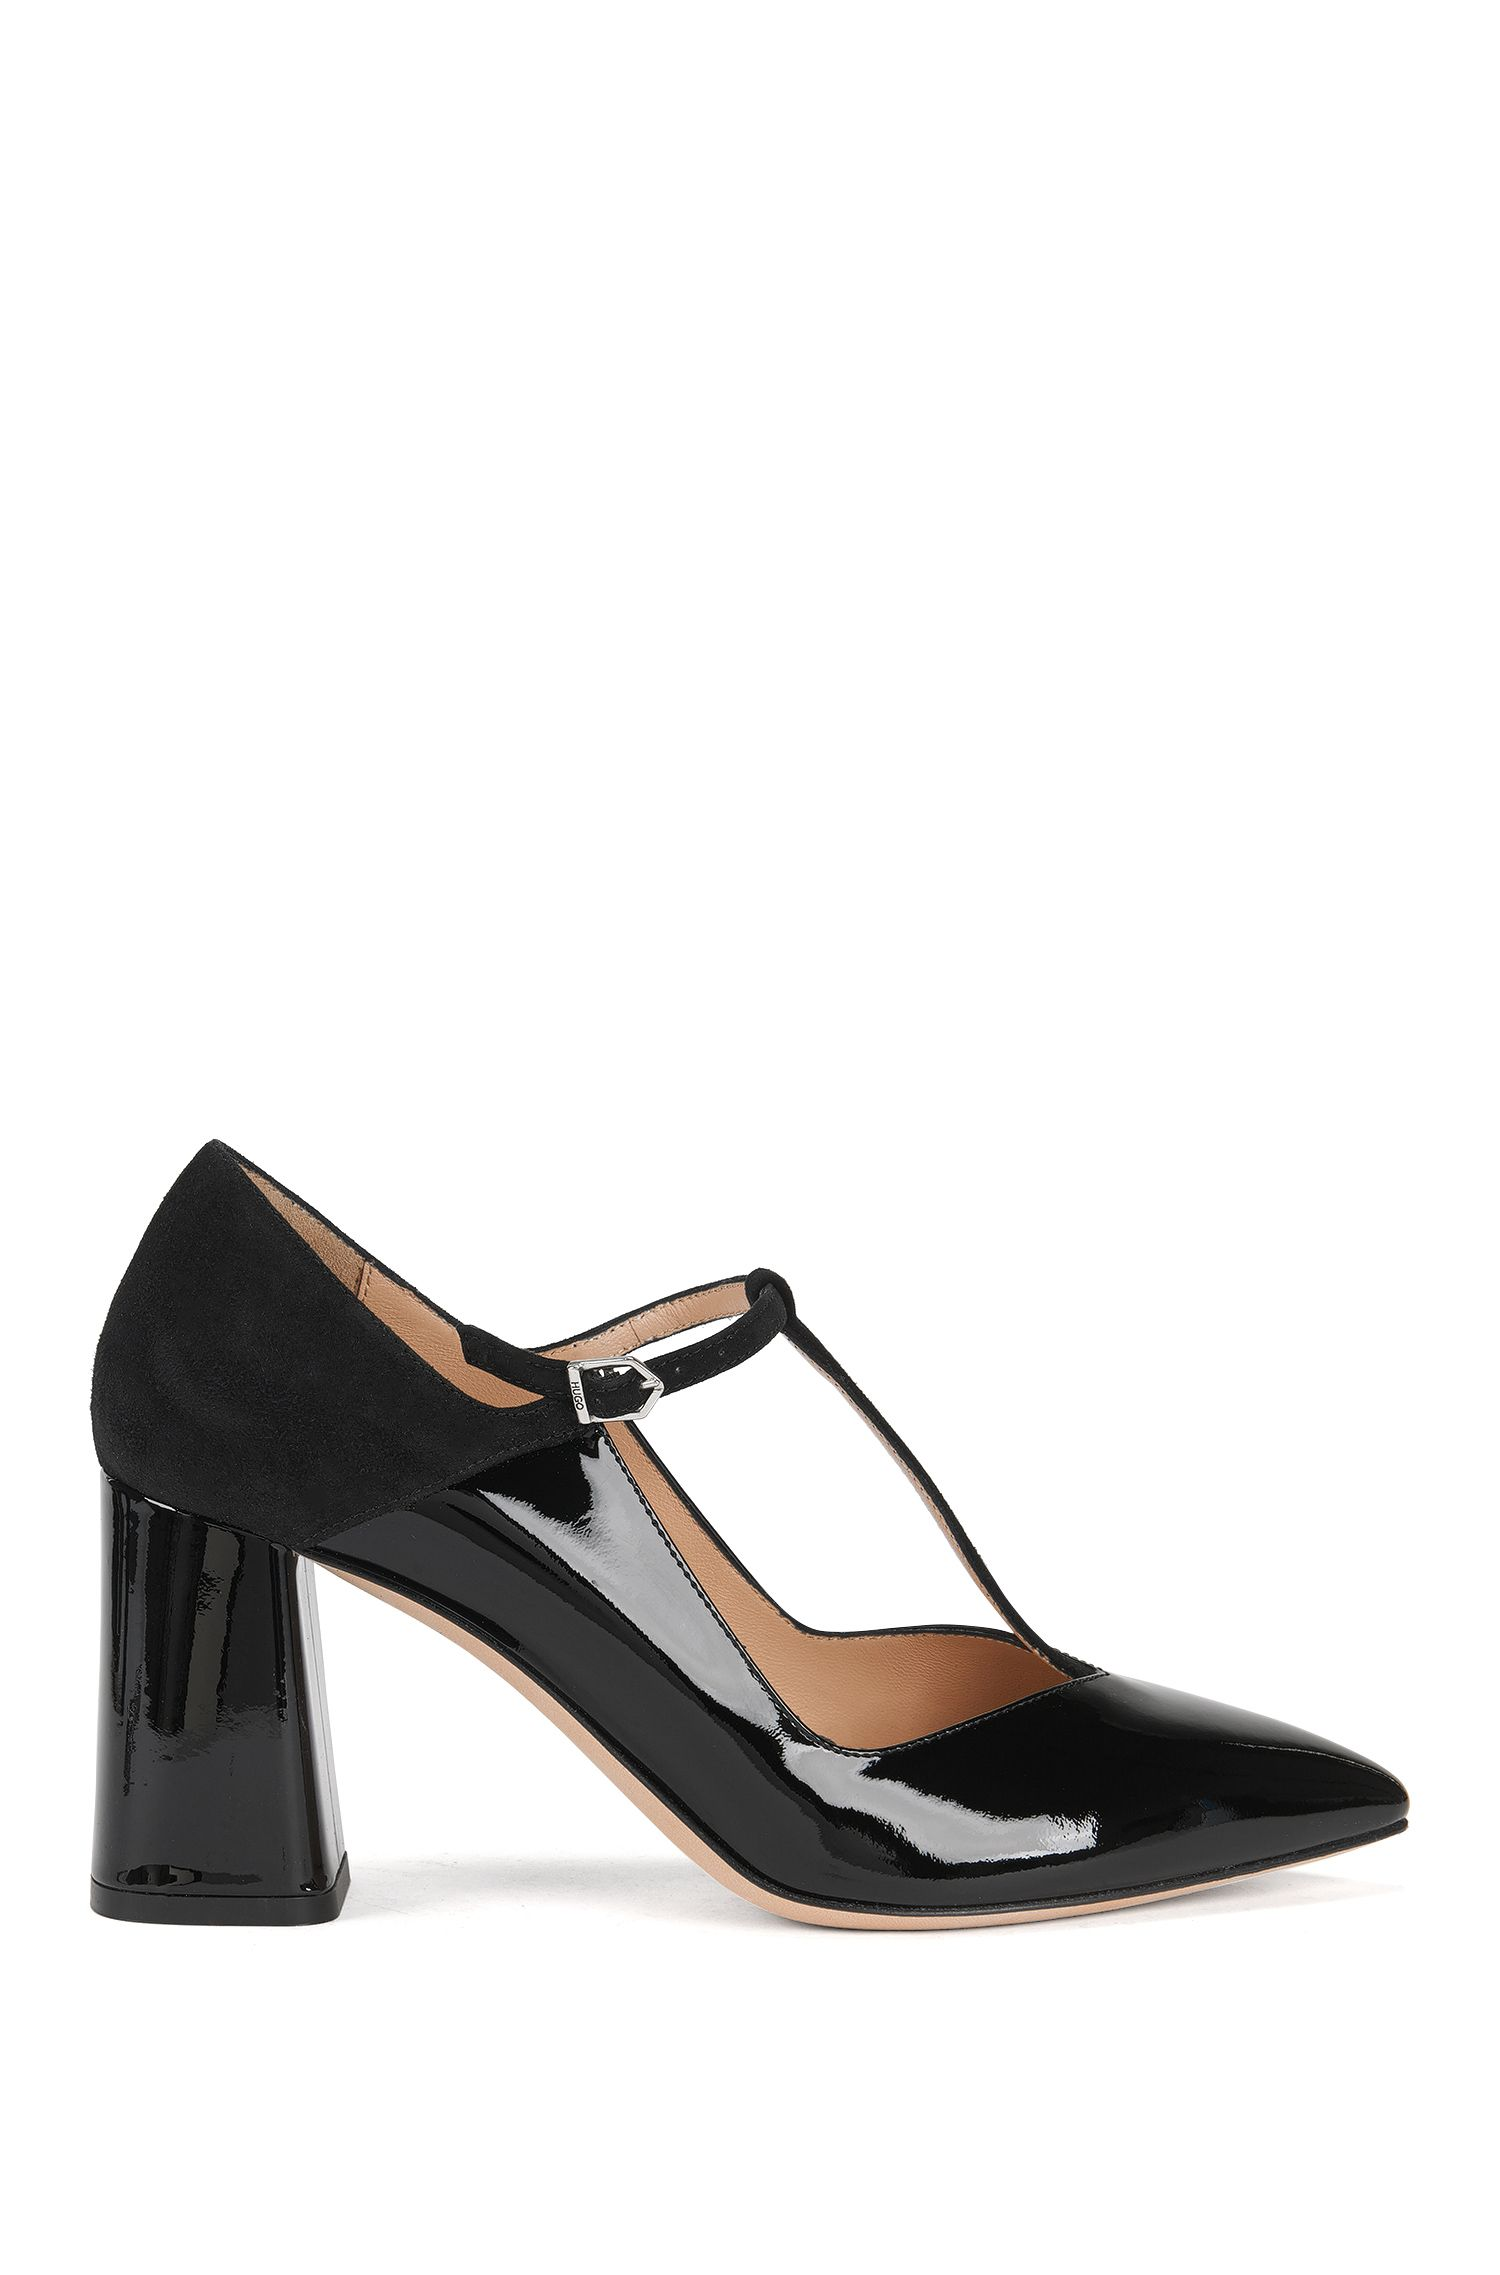 T-bar pumps in leather with flared heel